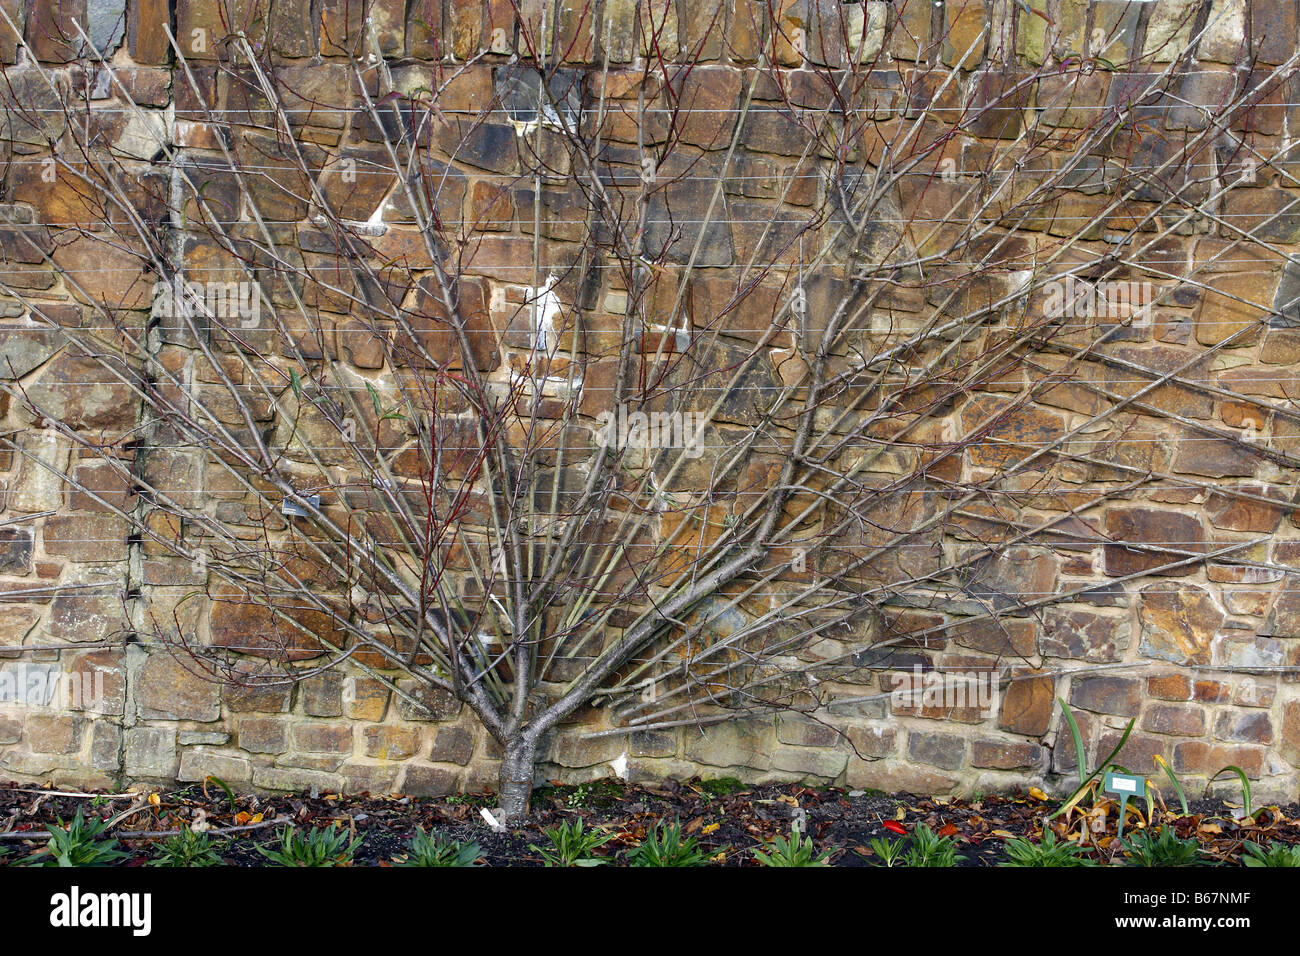 FAN TRAINED FRUIT TREES AT RHS ROSEMOOR GARDEN DEVON PEACH PEREGRINE ON ST JULIEN A PHOTOGRAPHED WITH RHS PERMIT - Stock Image